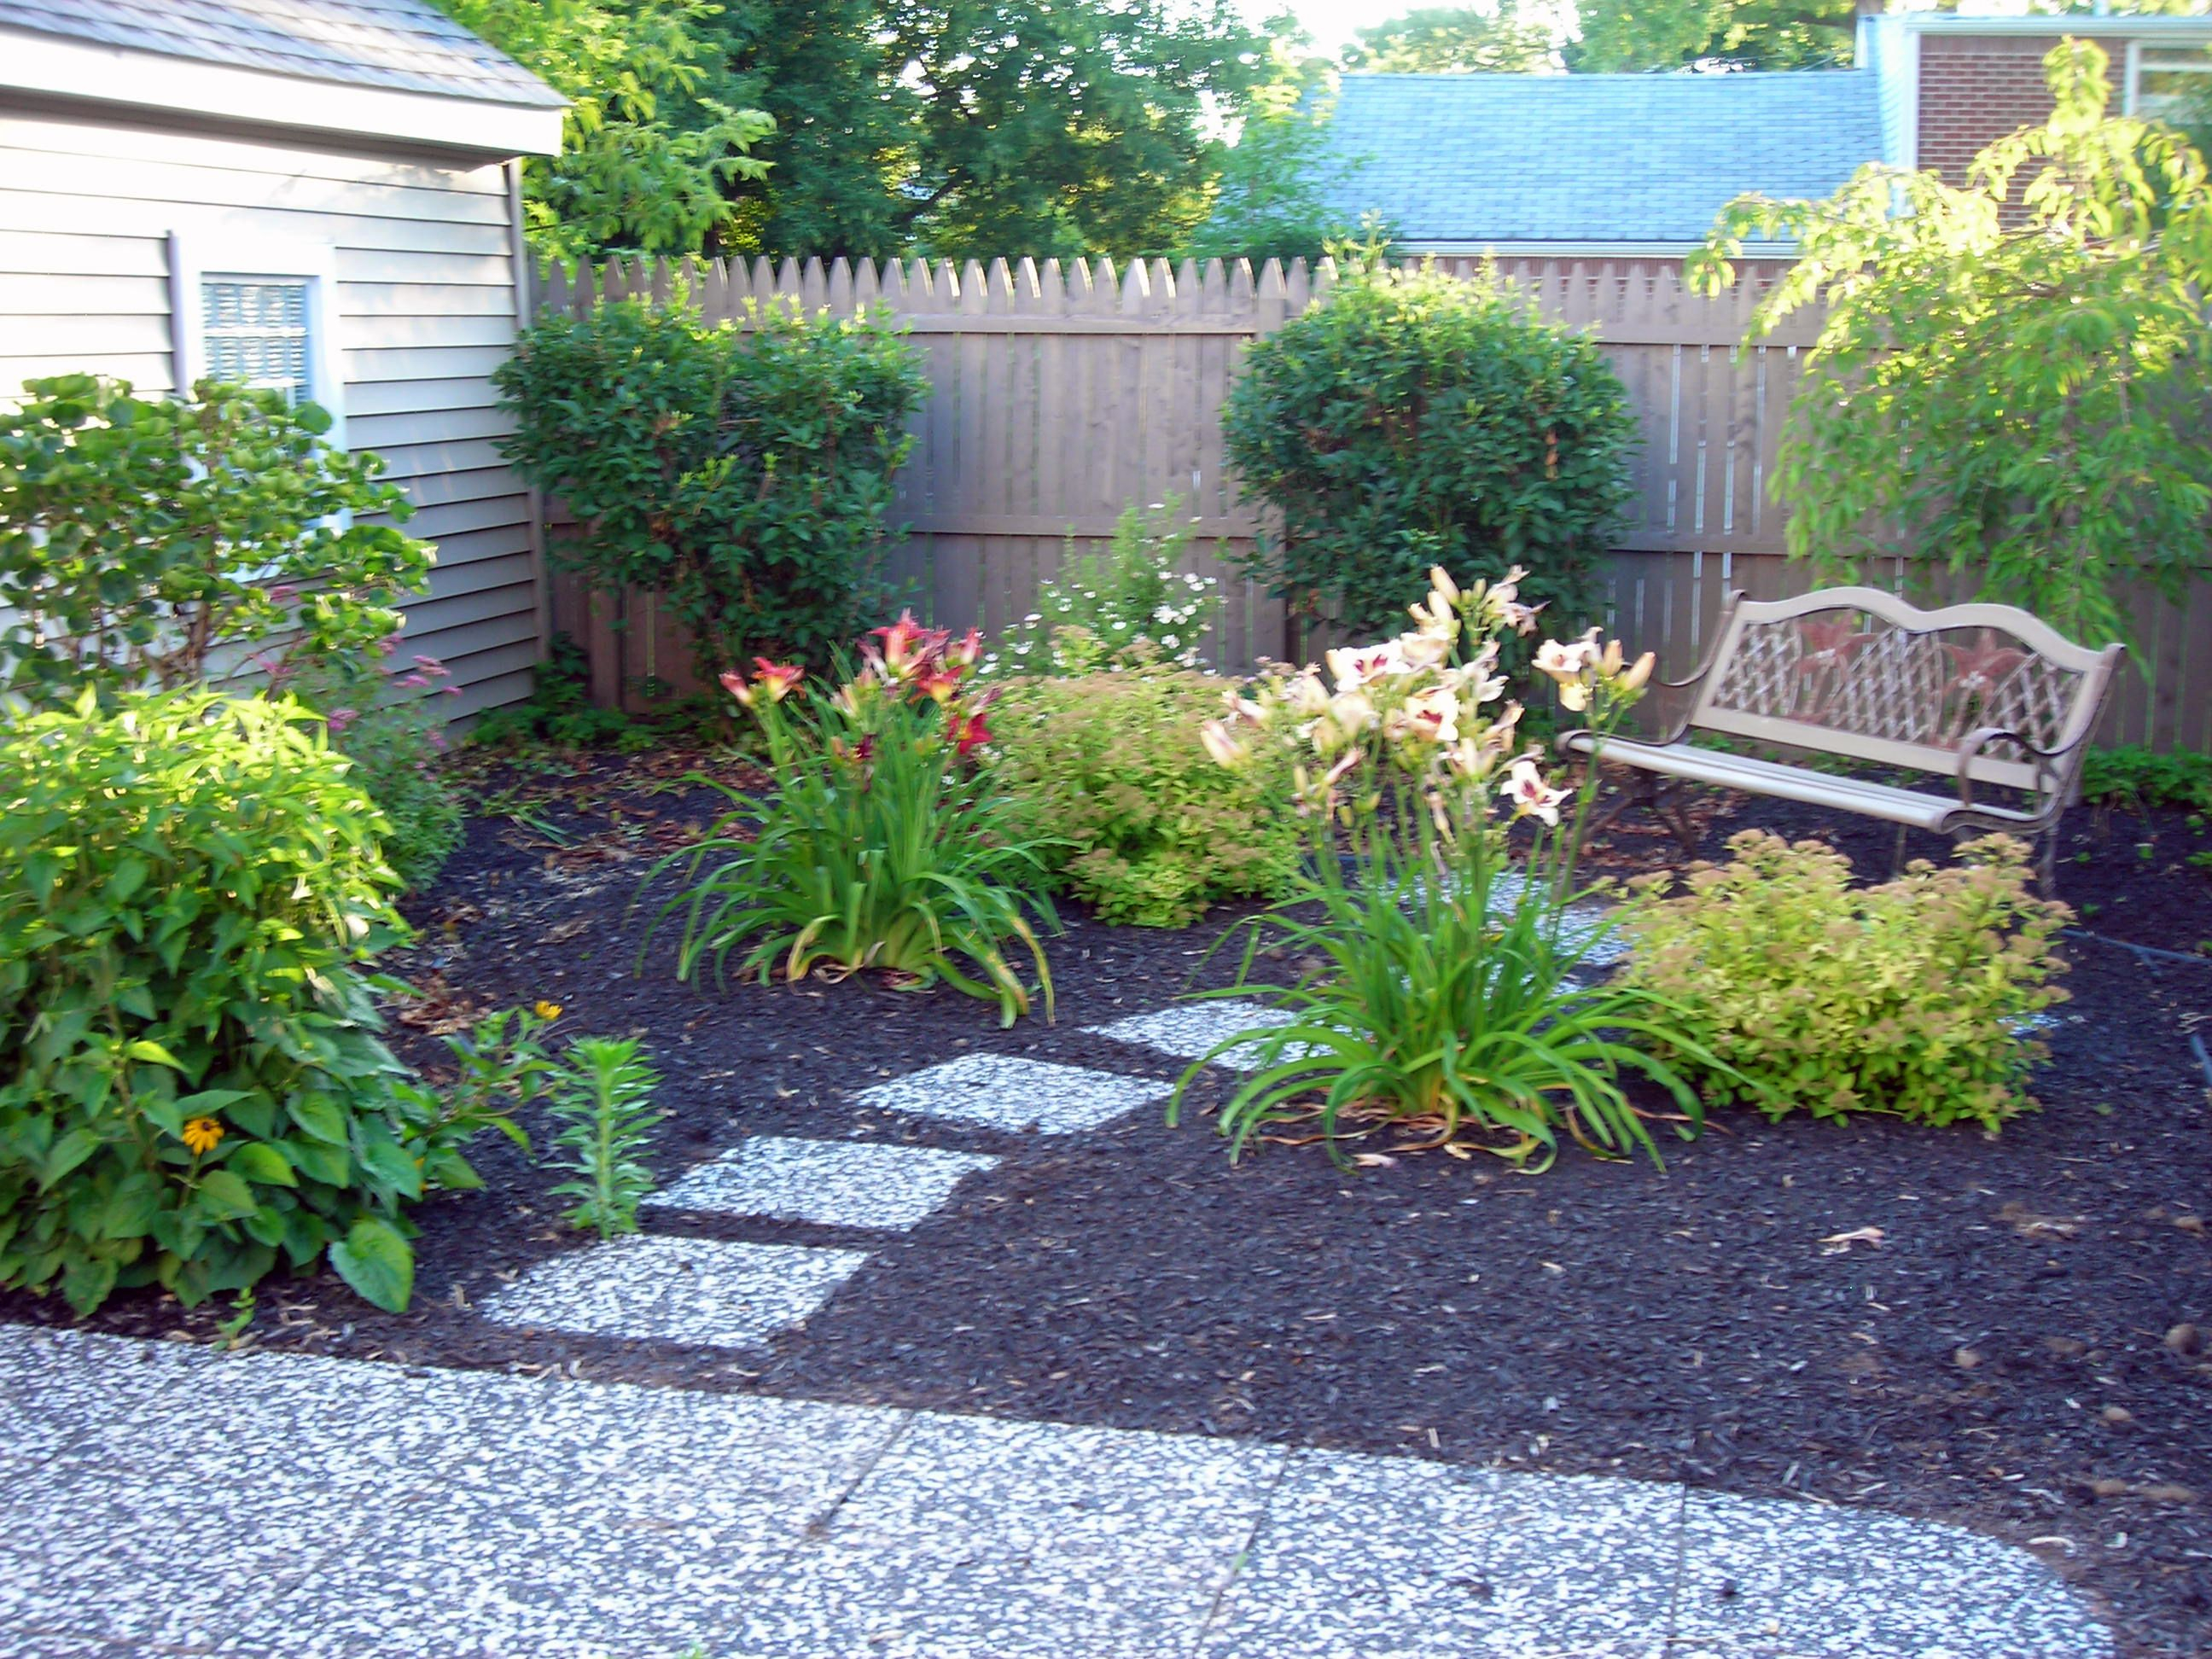 No Grass Backyard Not For The Whole Backyard But The Part That We with 11 Awesome Initiatives of How to Improve Small Backyard Ideas No Grass